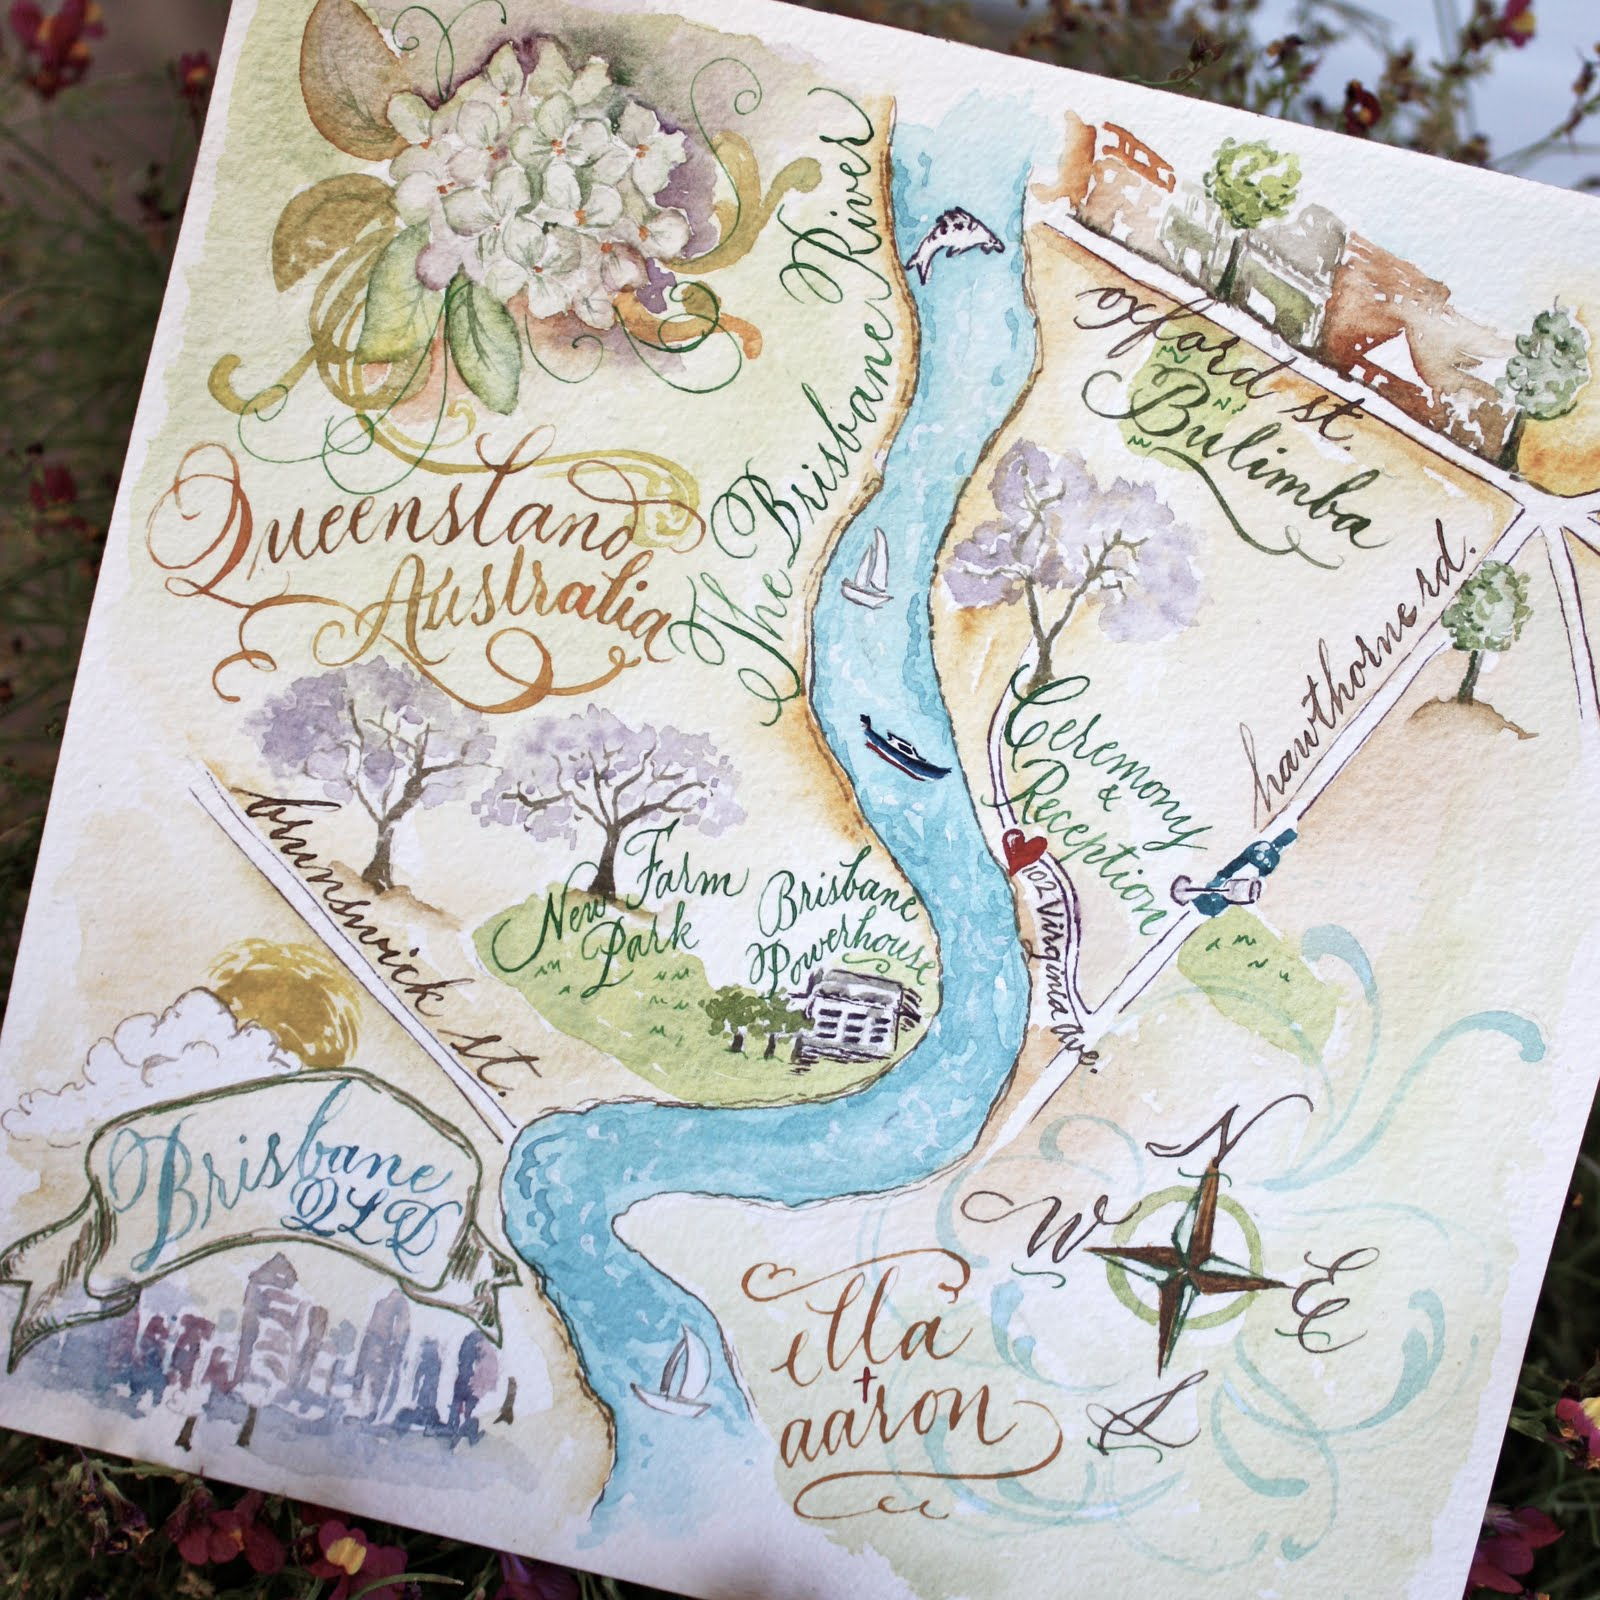 Maps For Wedding Invitations: Calligraphic Maps Add Flair To Your Wedding